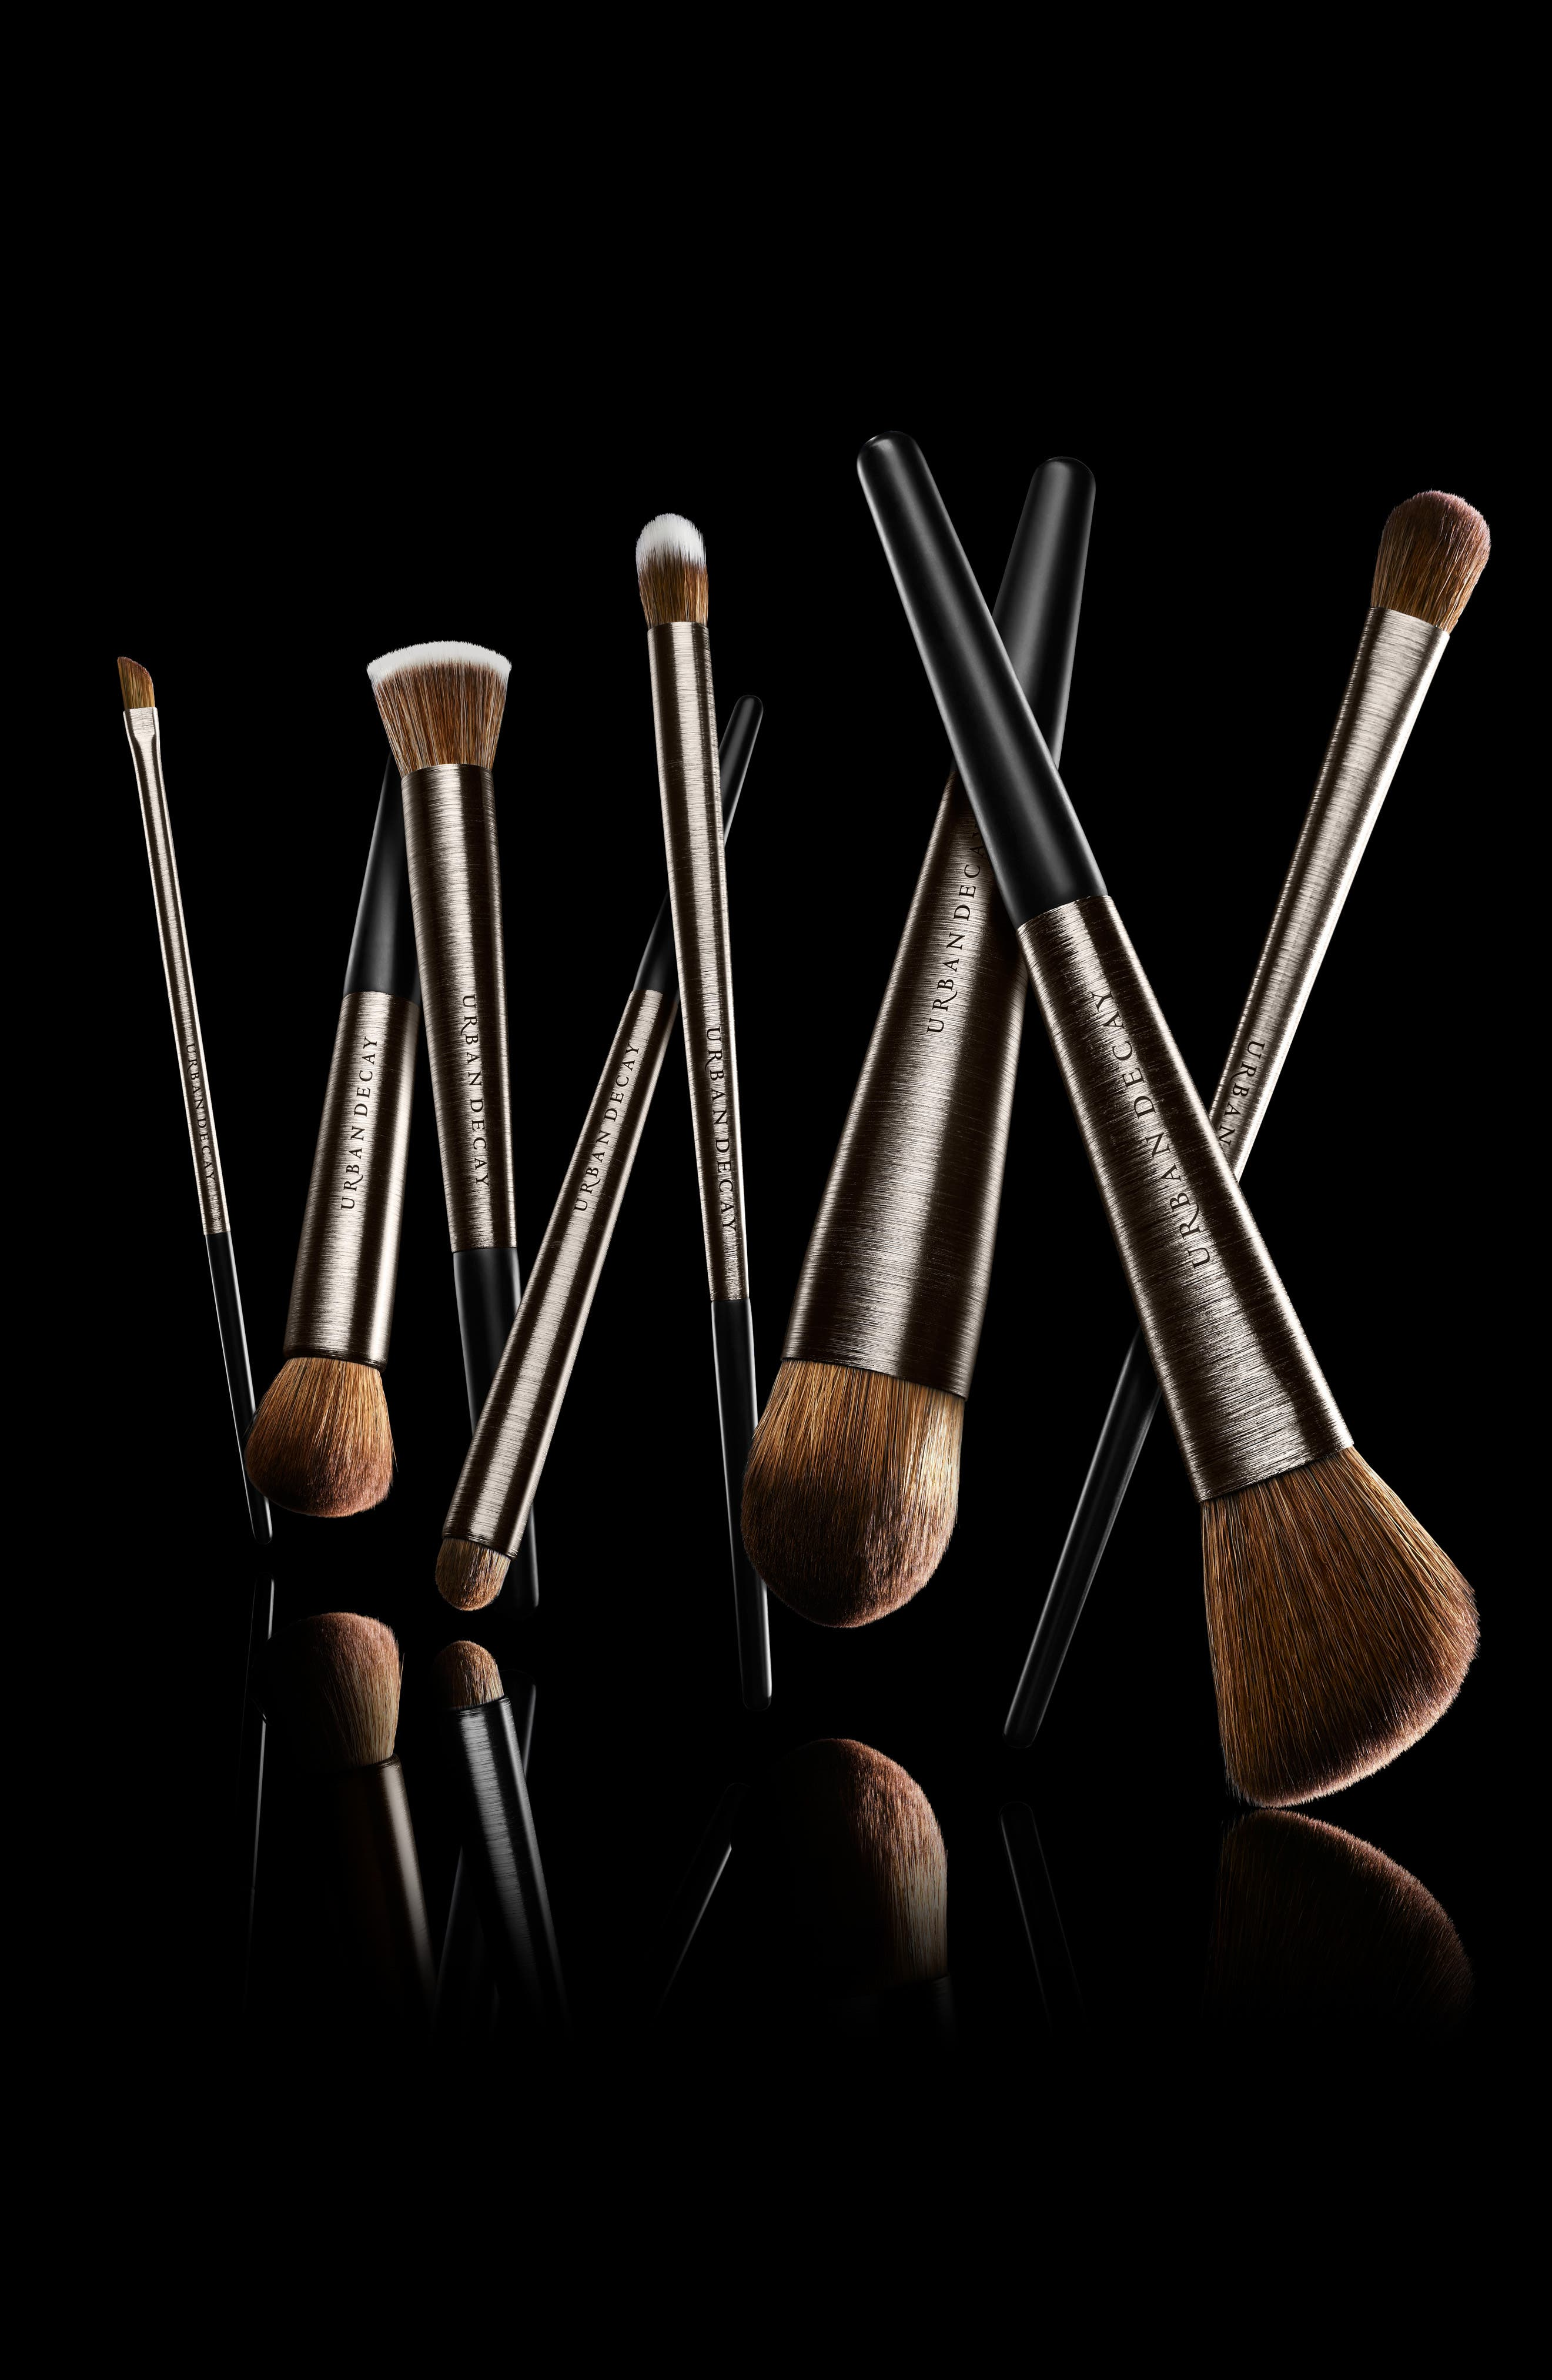 Urban Decay Pro Detailed Smudger Brush